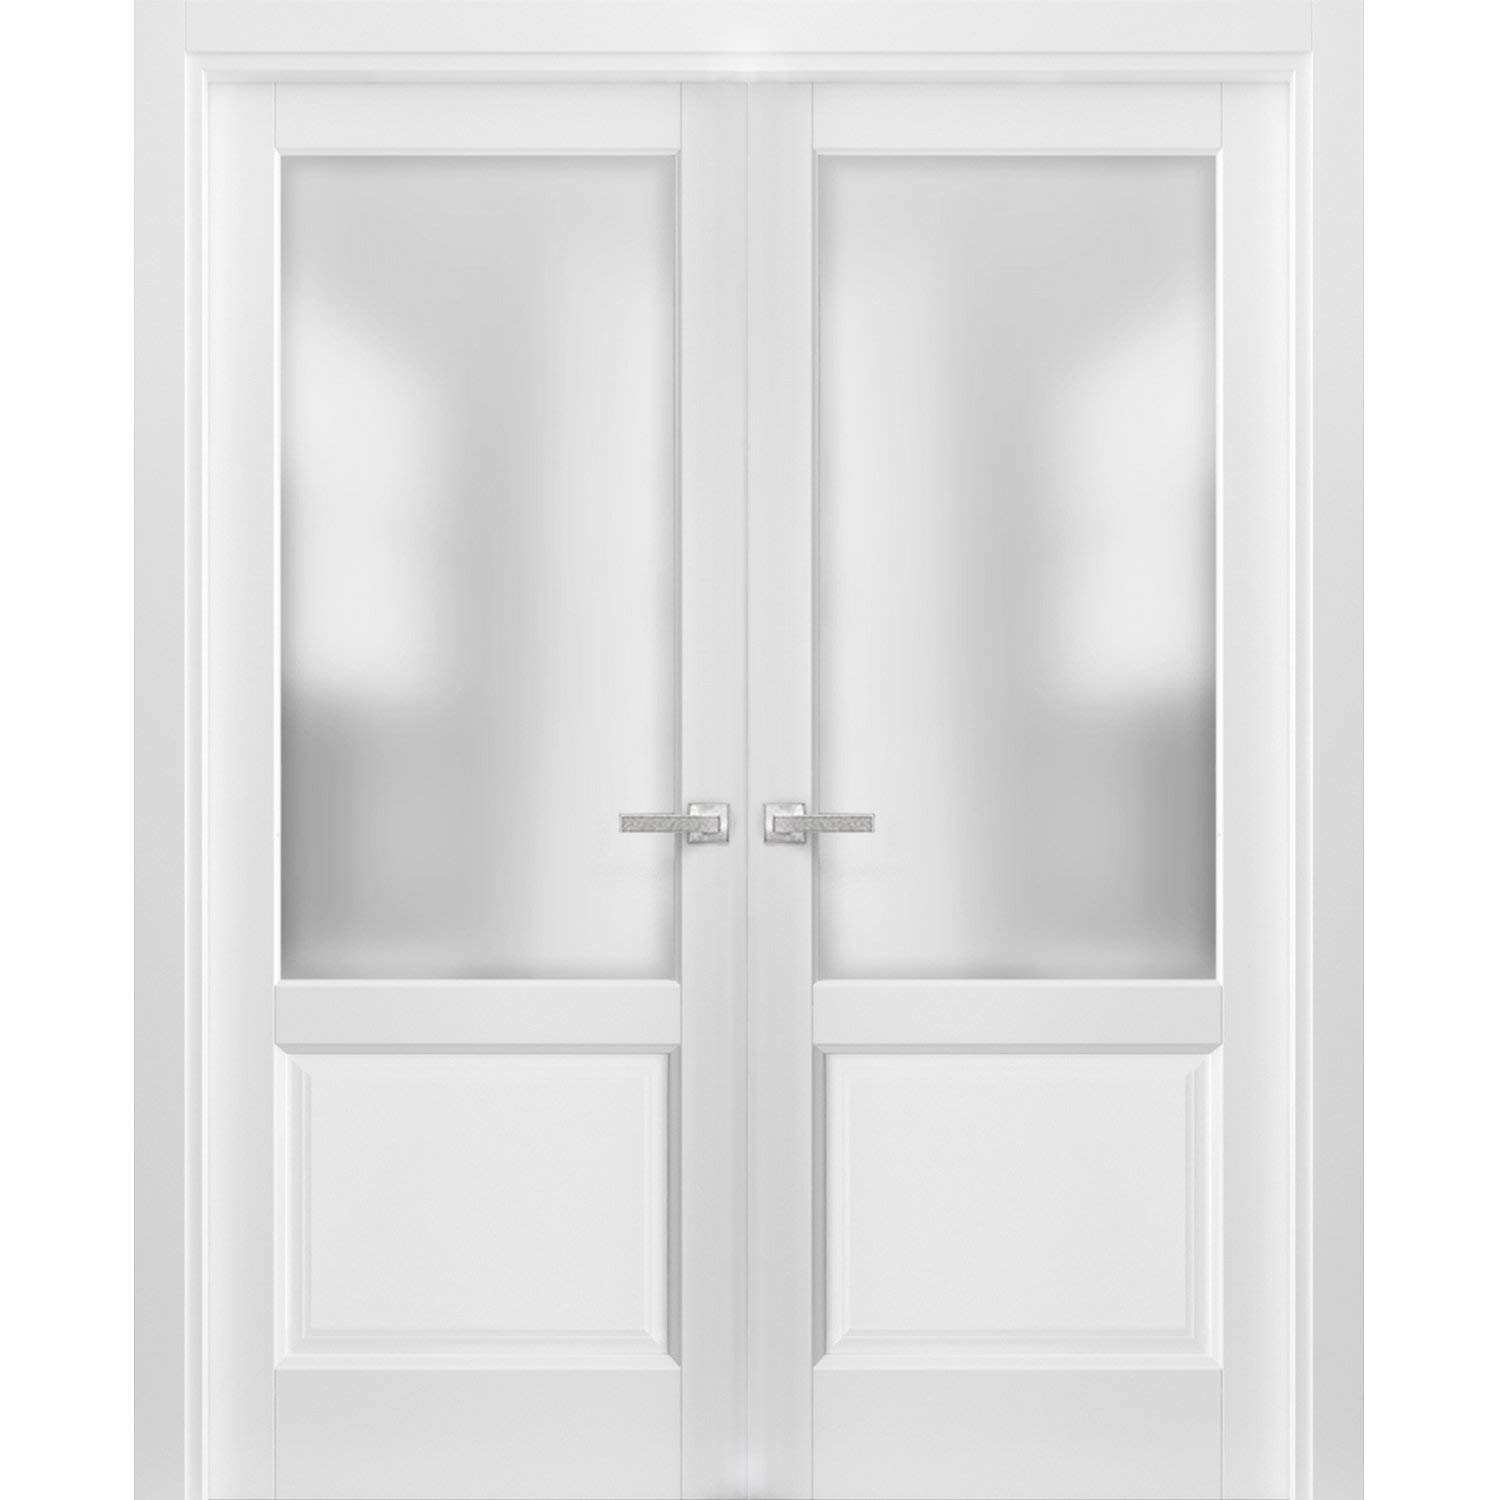 French Double Panel Lite Doors 56 x 80 with Hardware | Lucia 22 Matte White with Frosted Opaque Glass | Pre-Hung Panel Frame Trims | Bathroom Bedroom Interior Sturdy Door